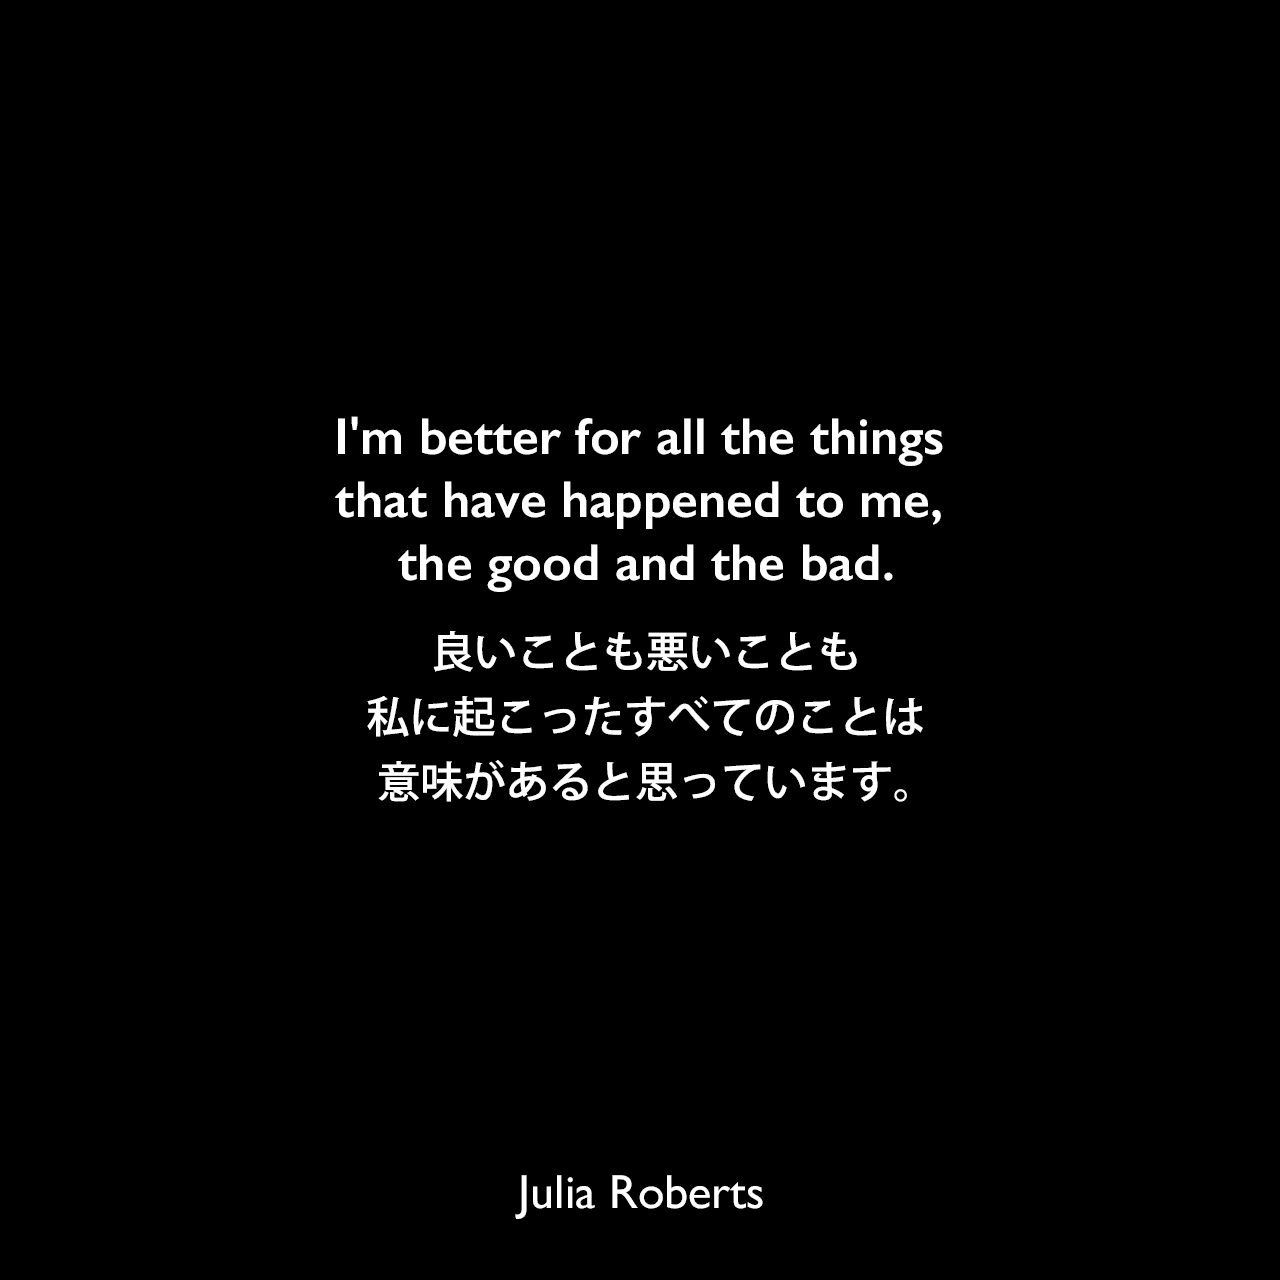 I'm better for all the things that have happened to me, the good and the bad.良いことも悪いことも、私に起こったすべてのことは意味があると思っています。Julia Roberts